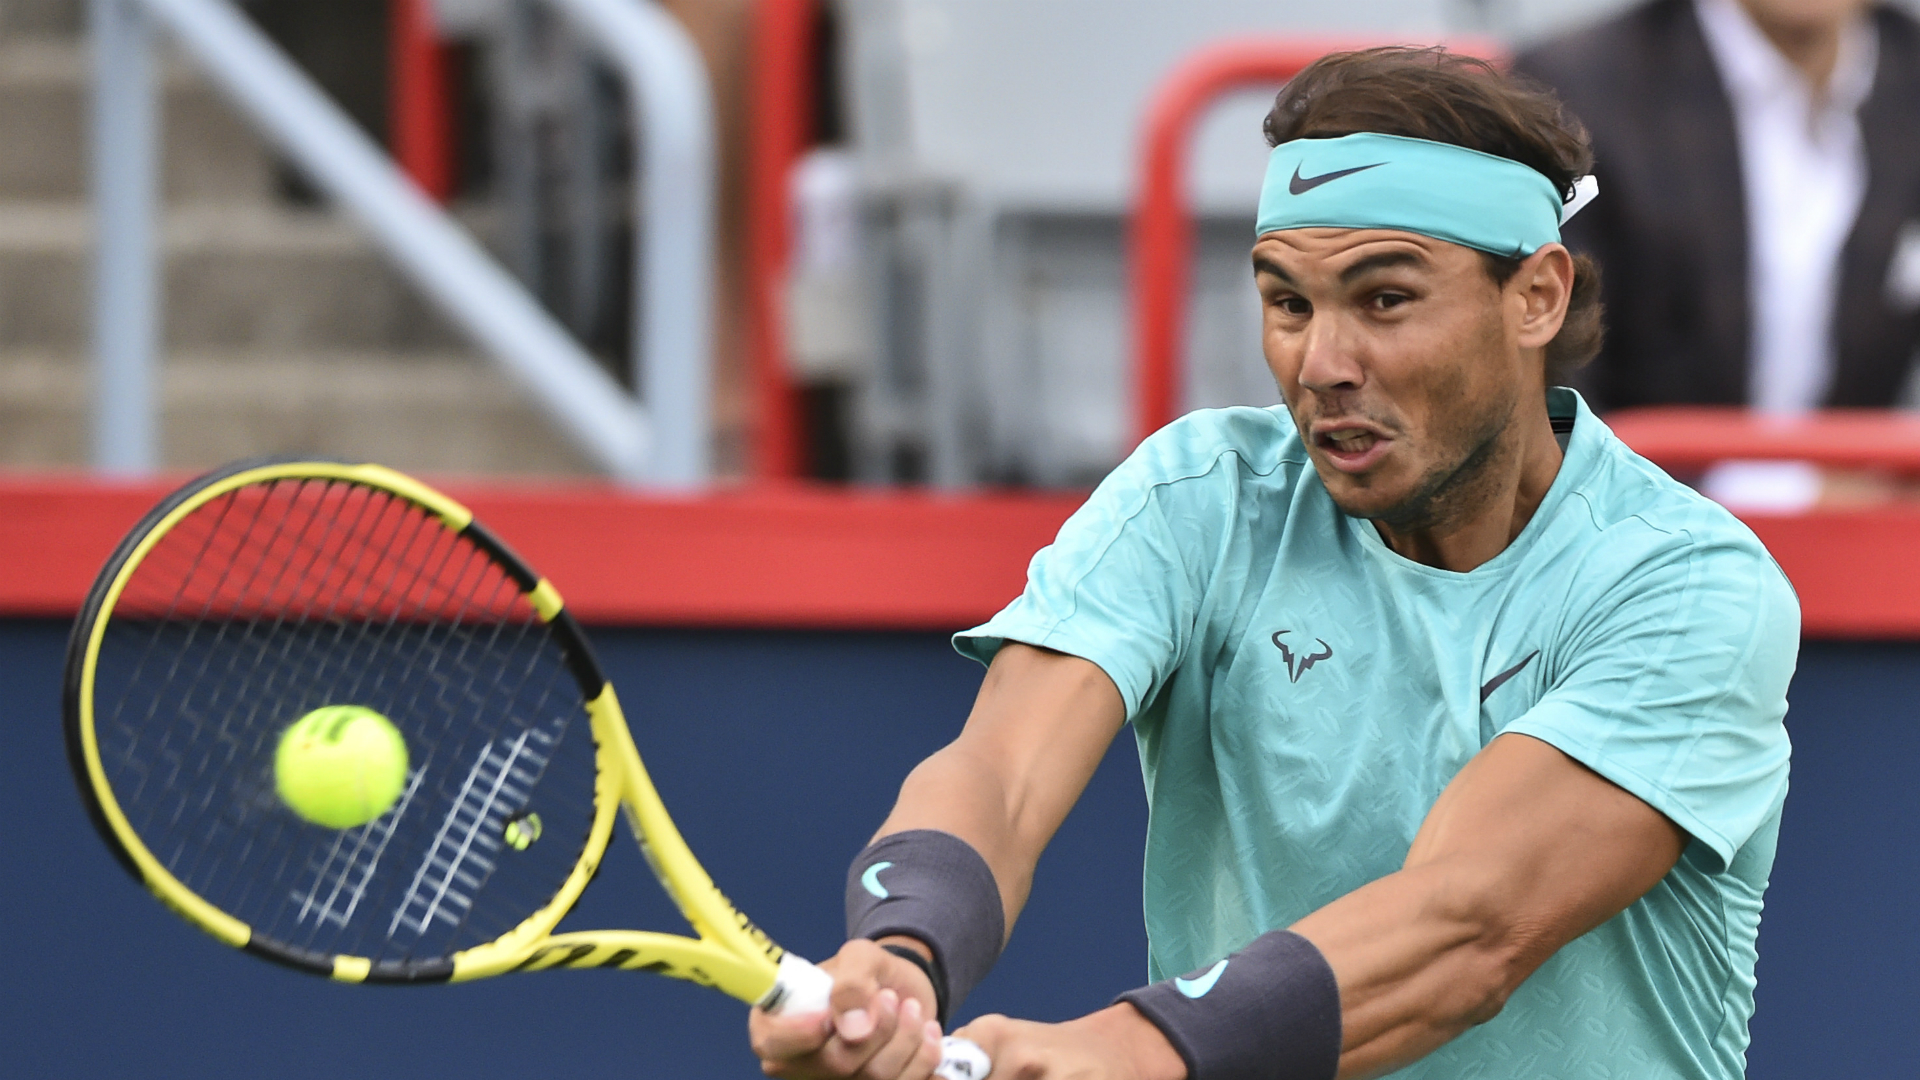 Rafael Nadal crushes Daniil Medvedev to secure fifth Rogers Cup title